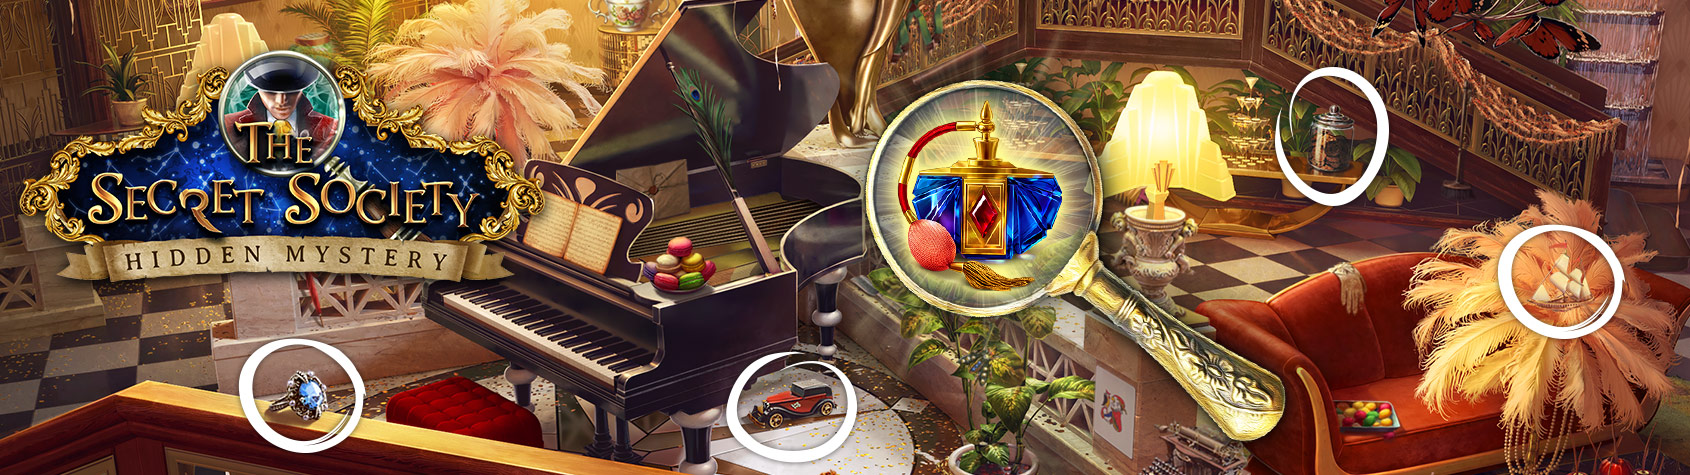 The Secret Society - Find objects and solve puzzles